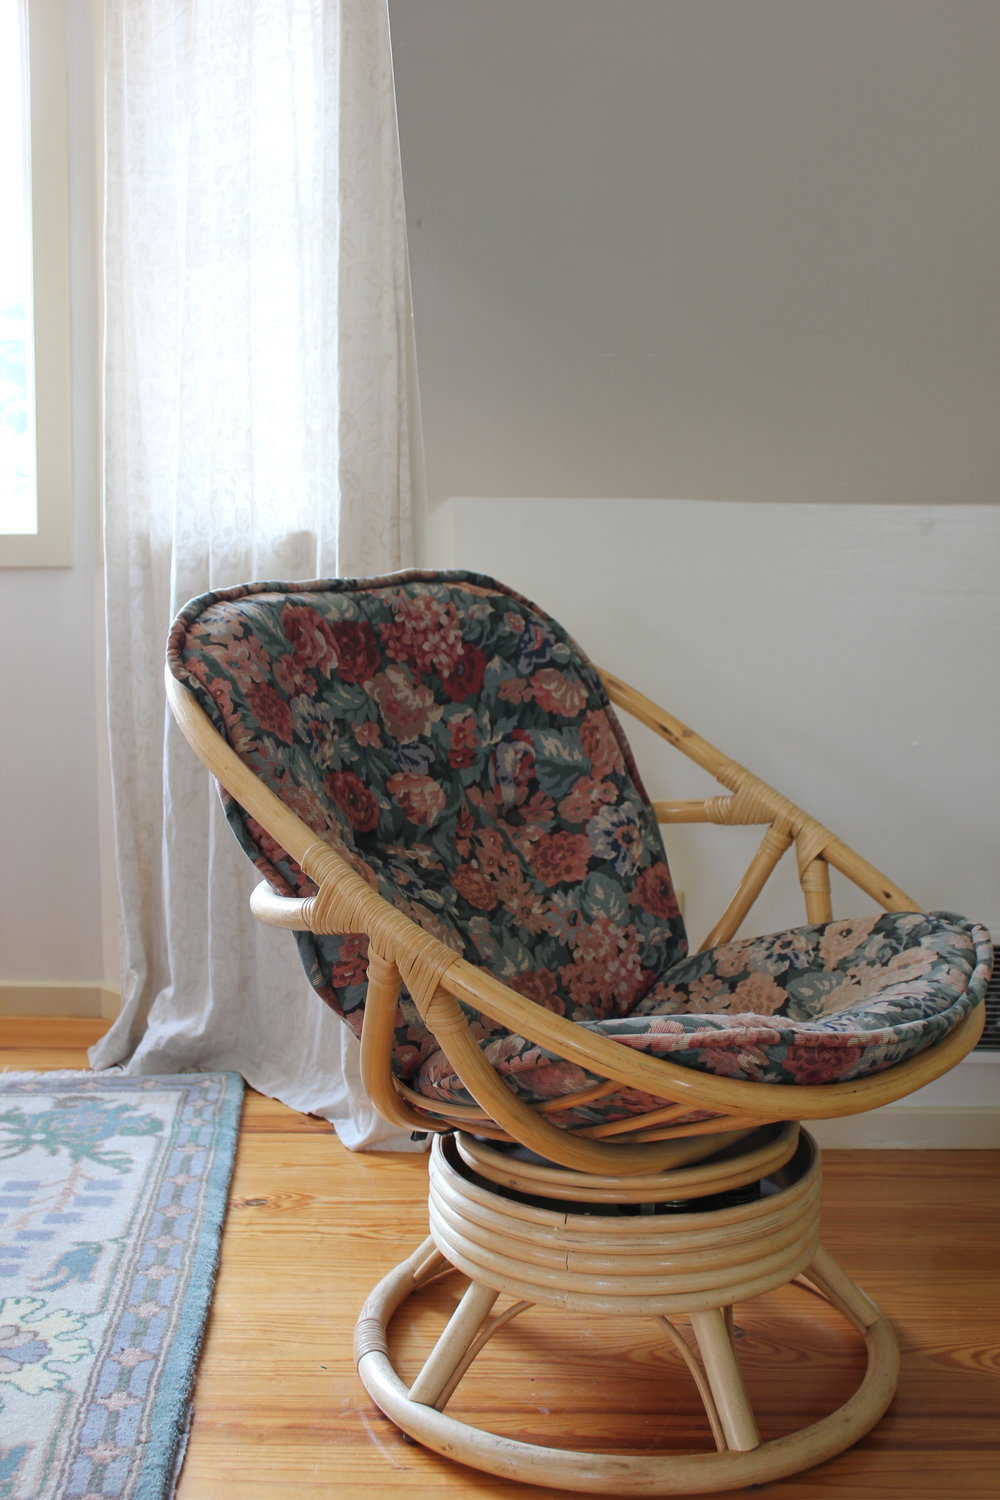 vintage rattan and floral rocking chair at plum nelli farm chic apartment rental airbnb.JPG